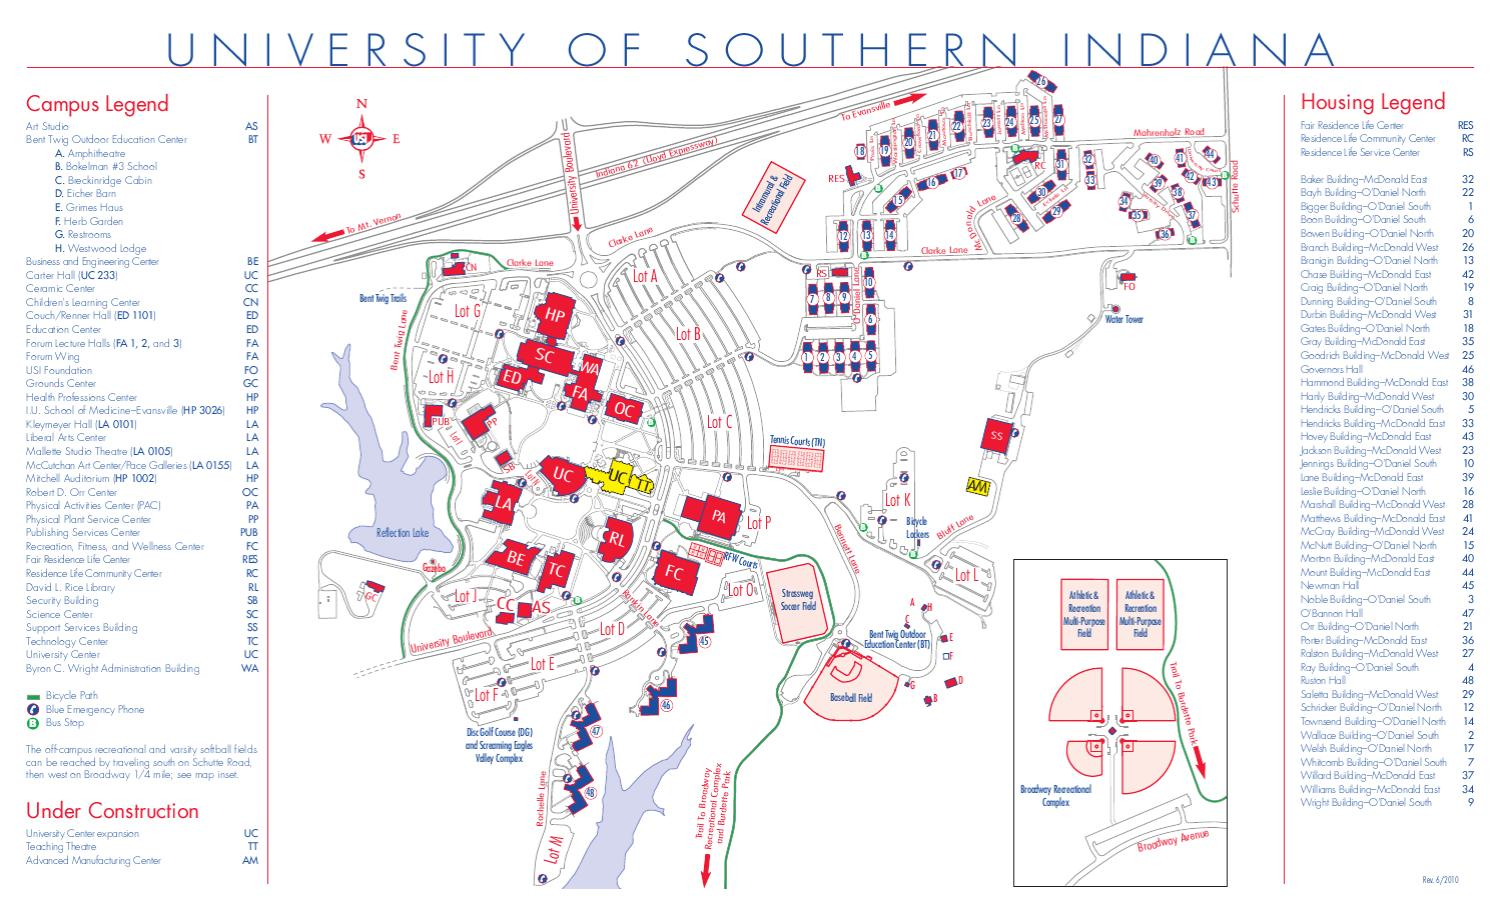 university of evansville campus map Campus Map By University Of Southern Indiana Issuu university of evansville campus map